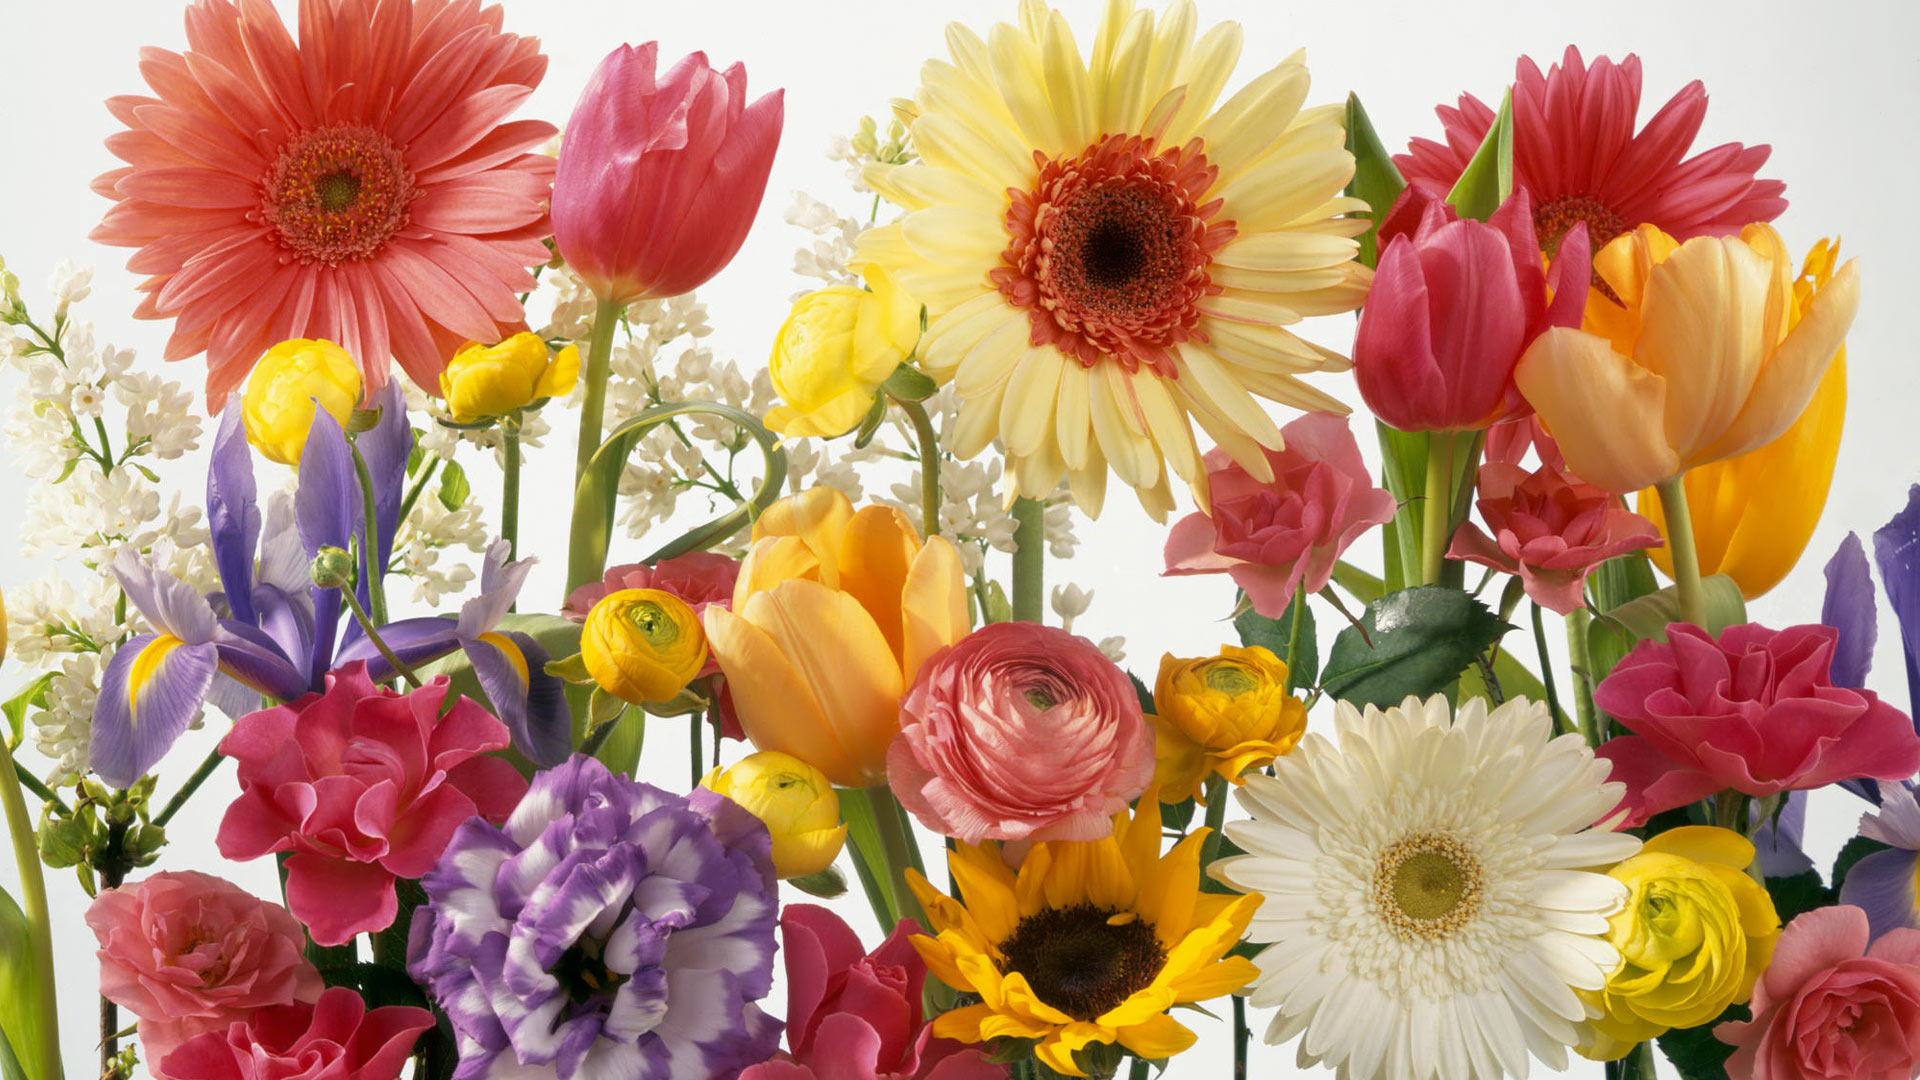 Spring wallpapers HD desktop background flowers 1920x1080